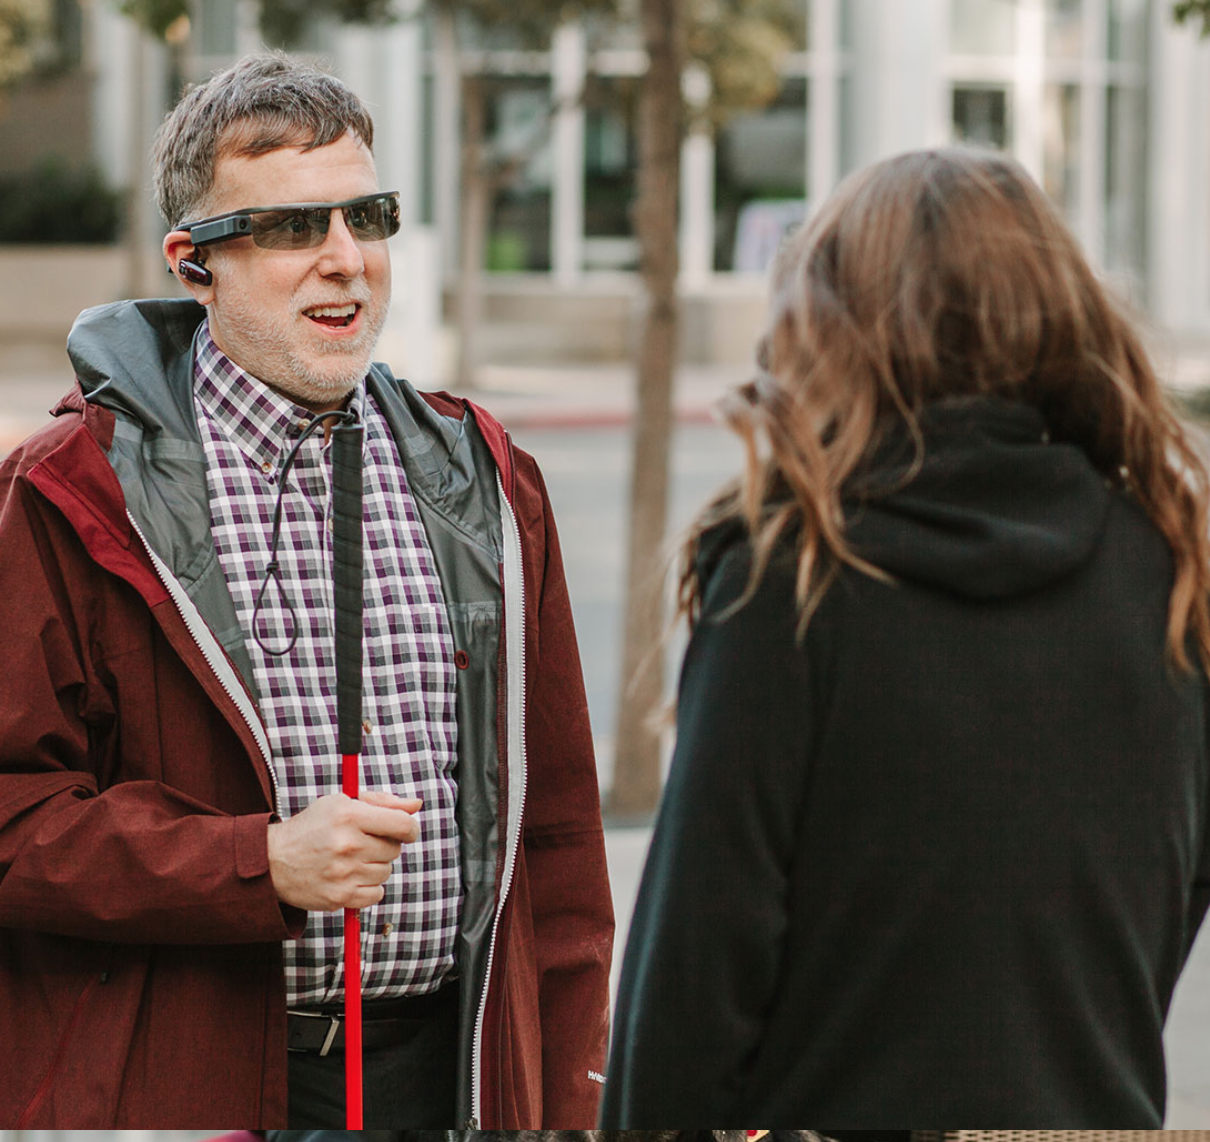 Photo of man wearing Aira glasses talking to a woman